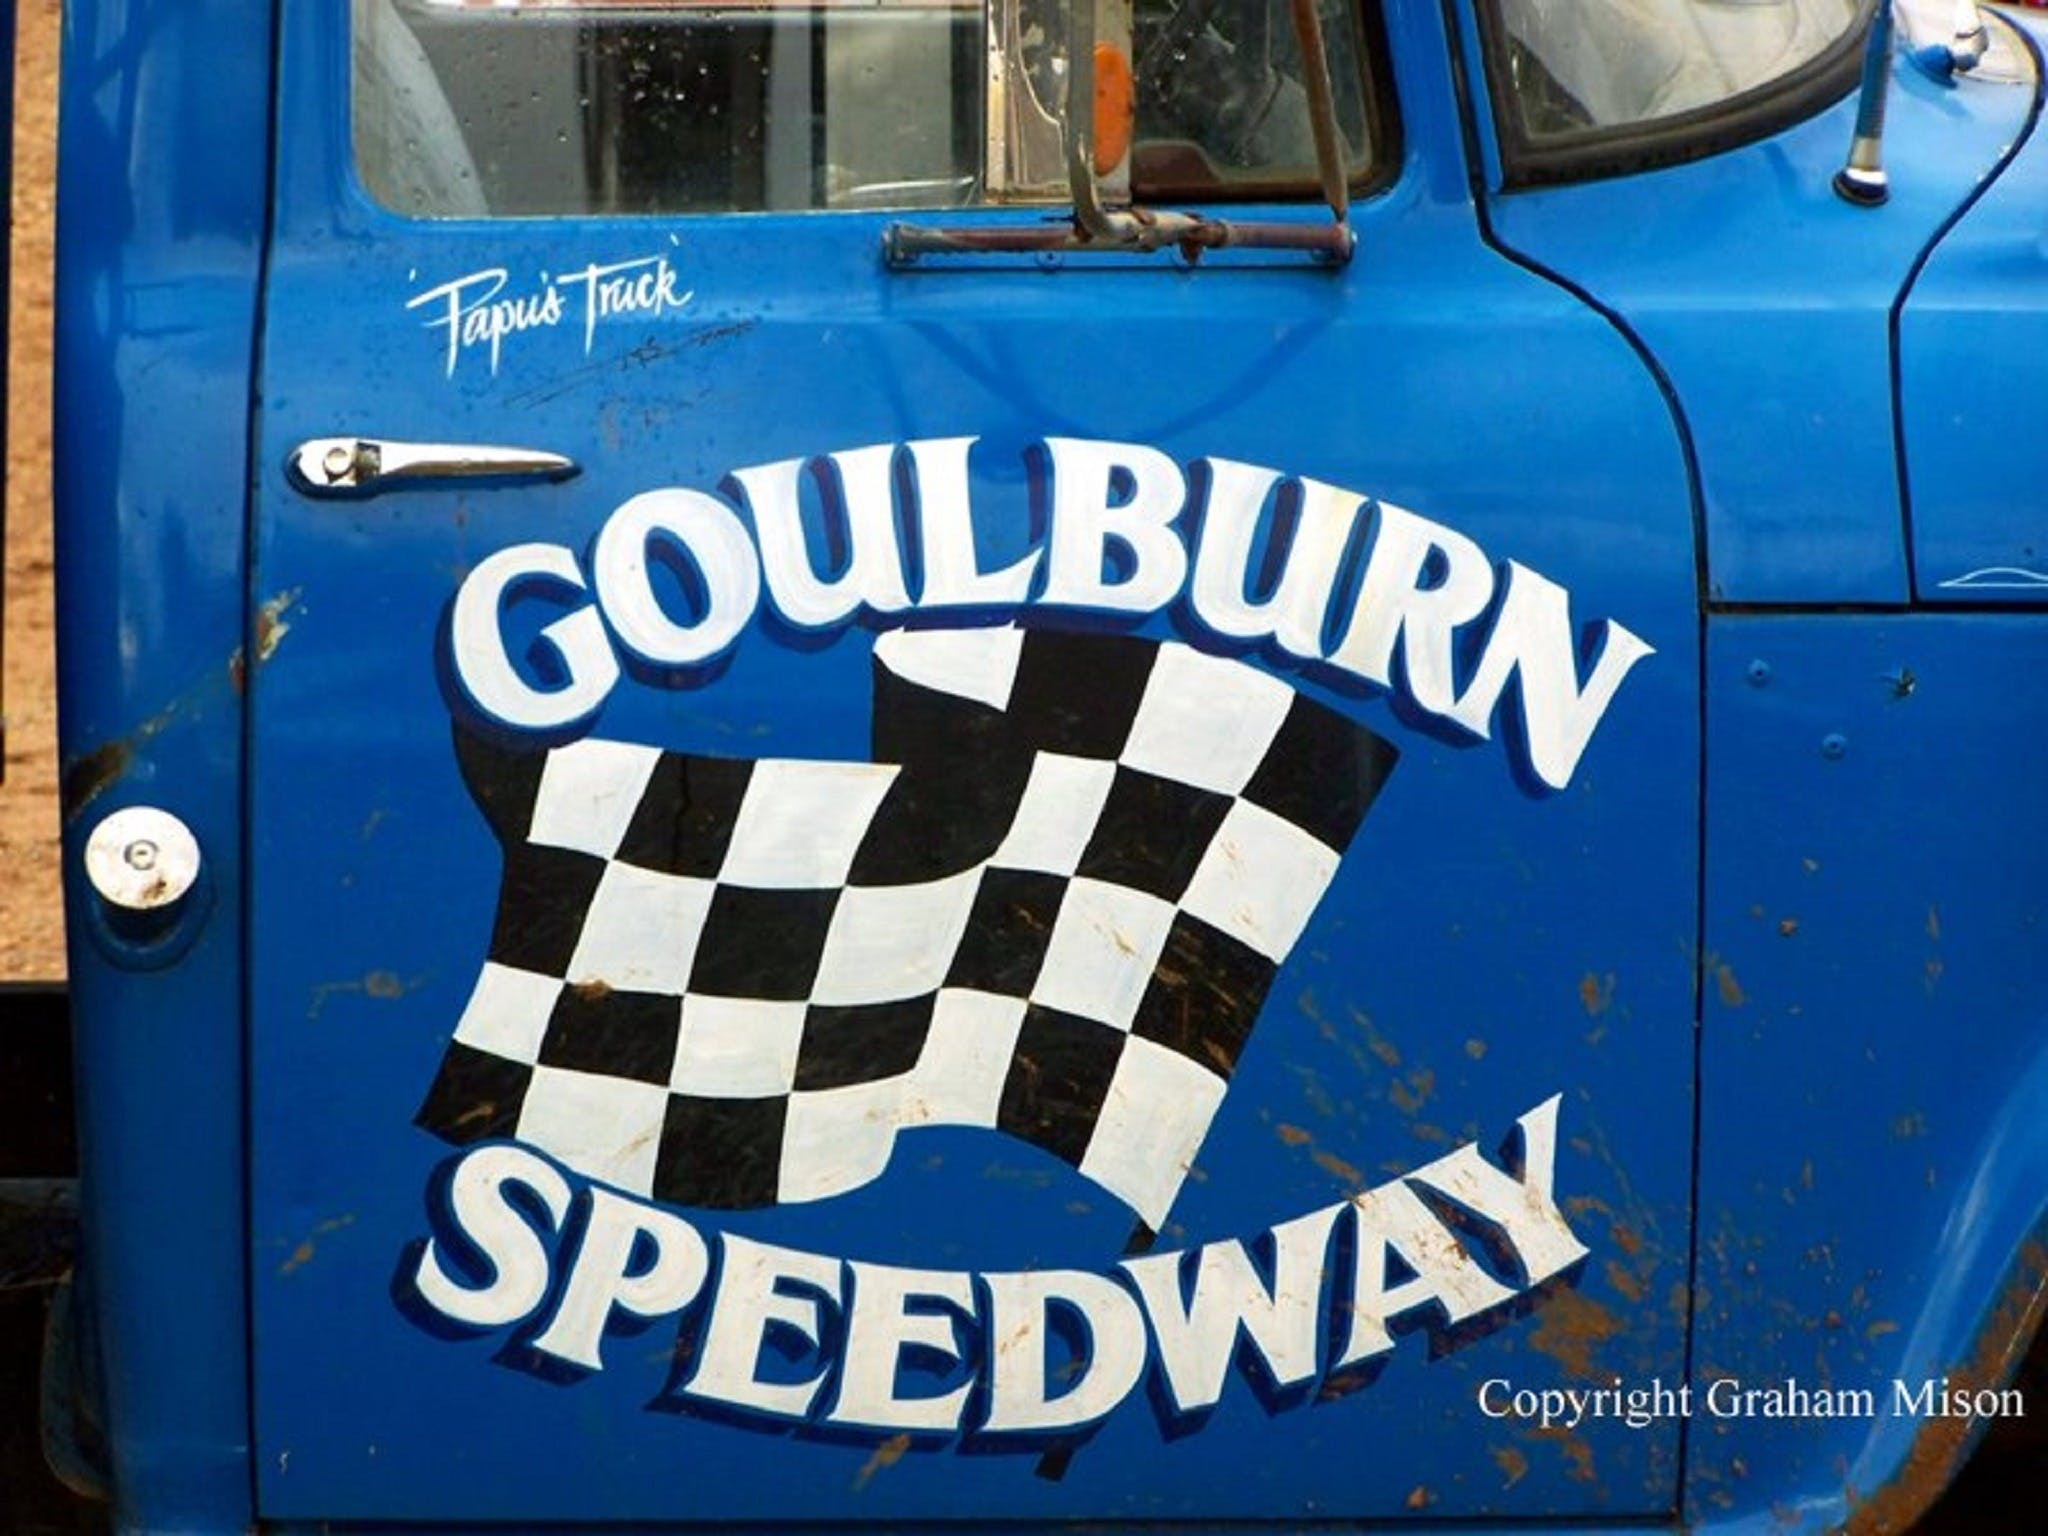 50 years of racing at Goulburn Speedway - ACT Tourism